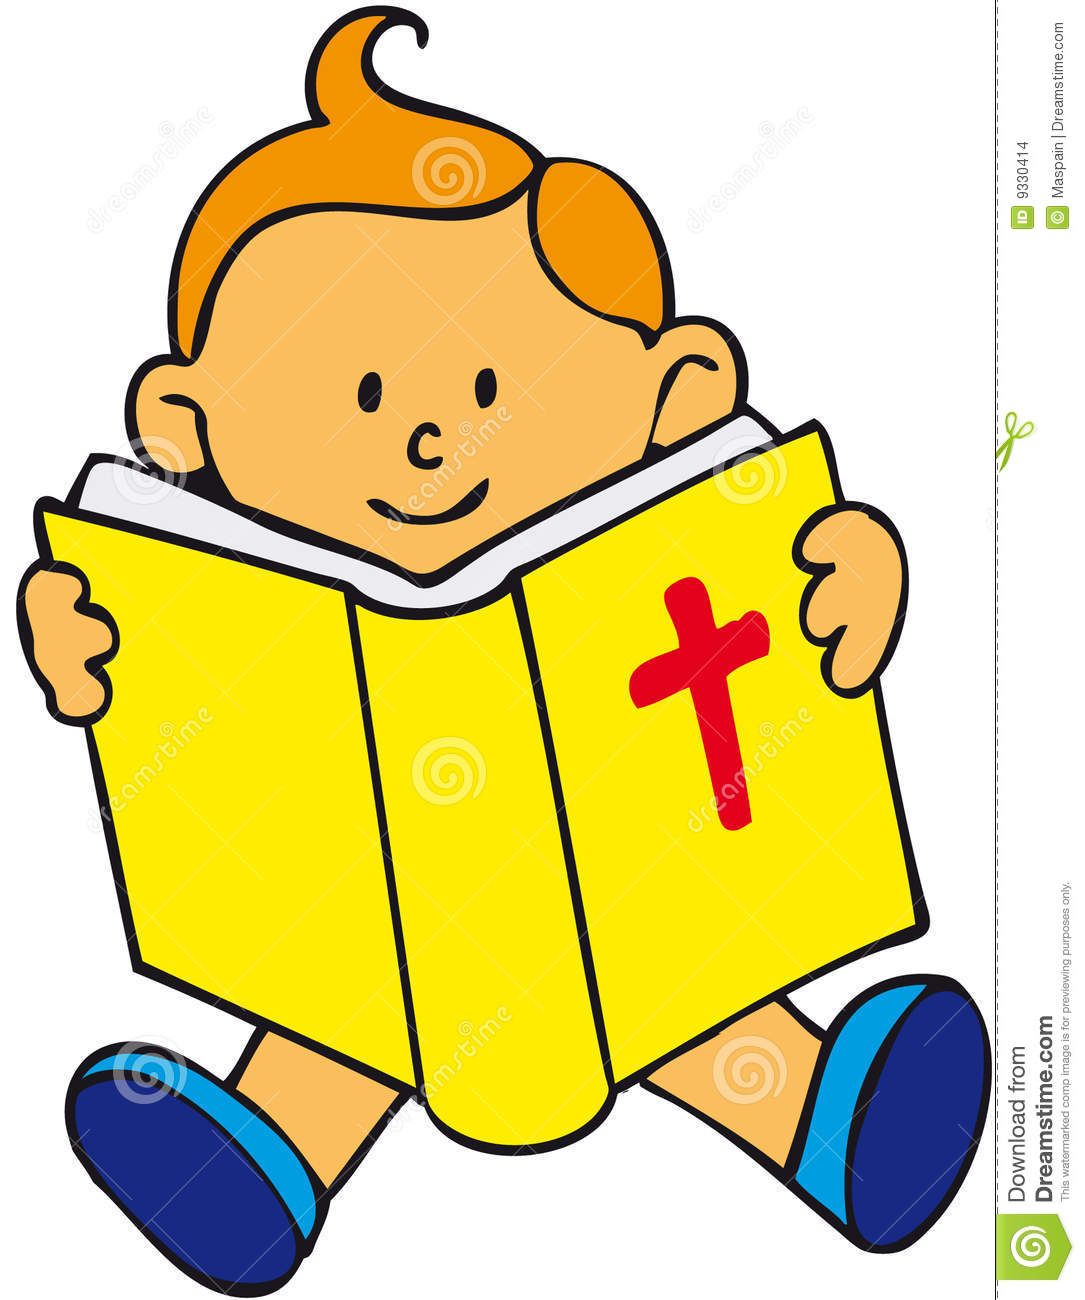 Kids bible clipart 4 » Clipart Station.